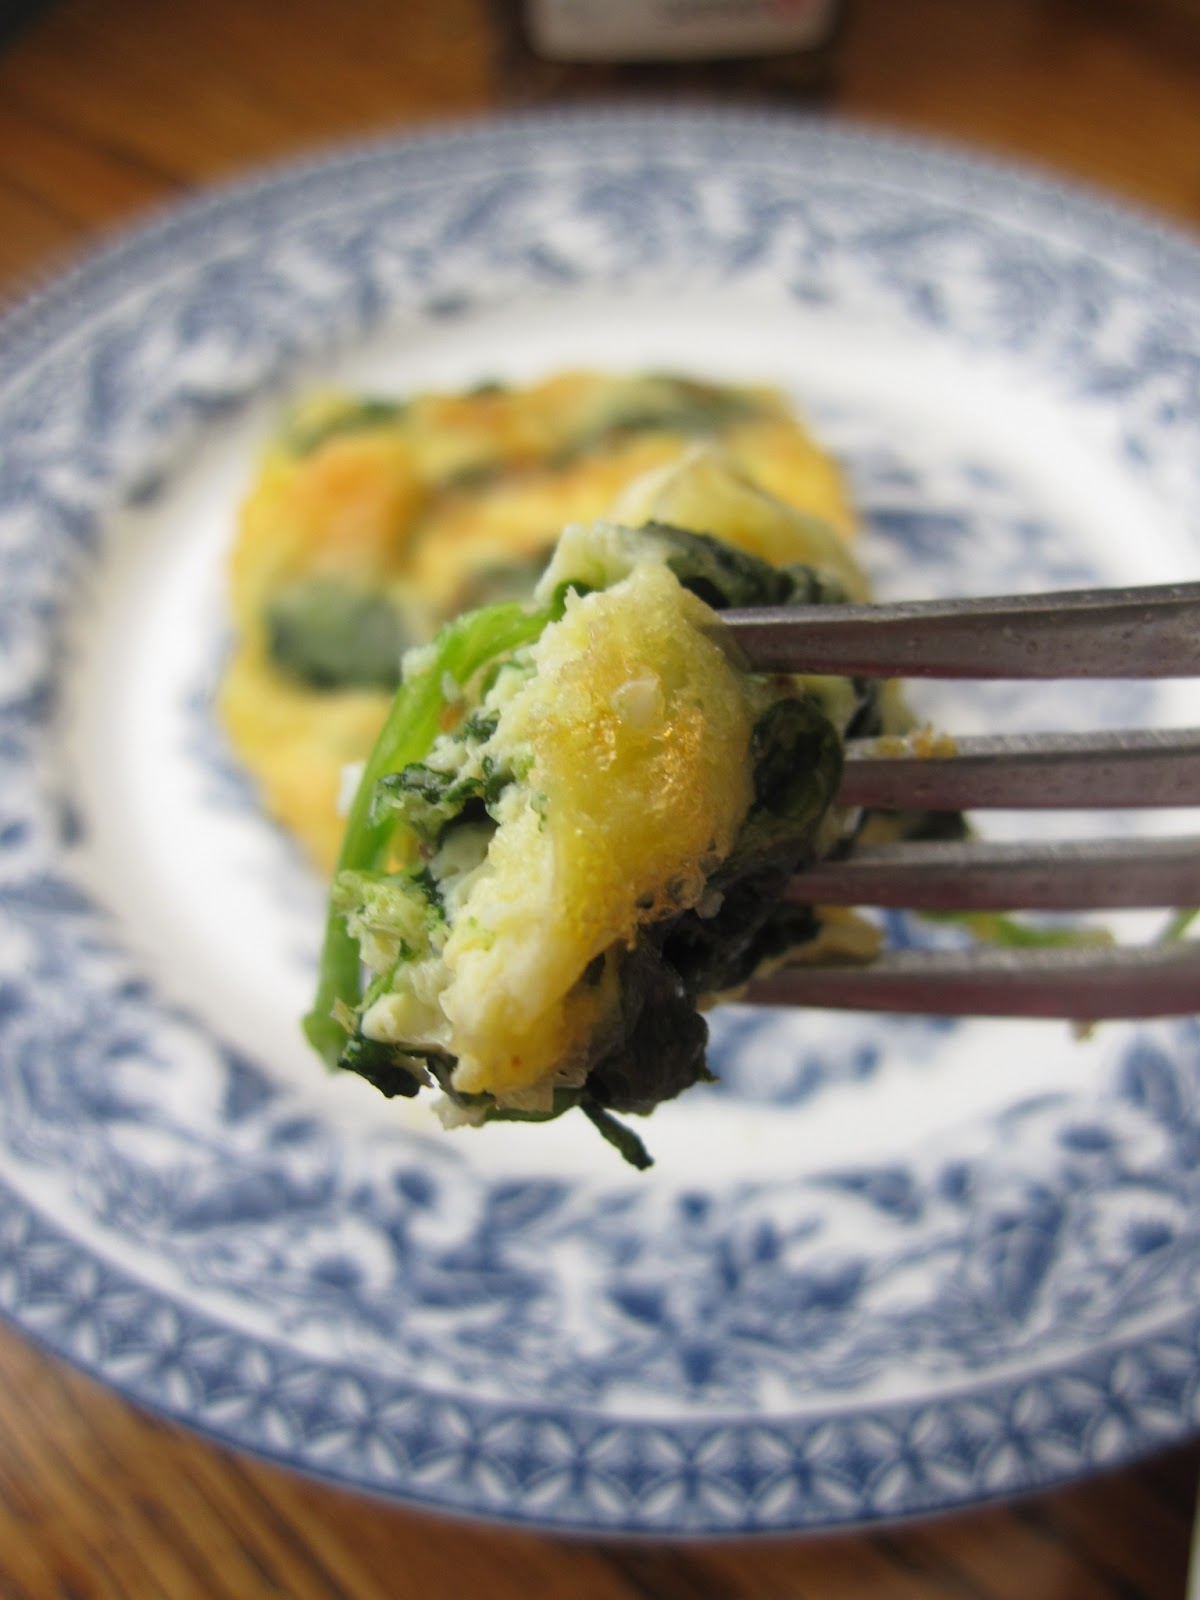 Mozzarella, Spinach and Egg Bake